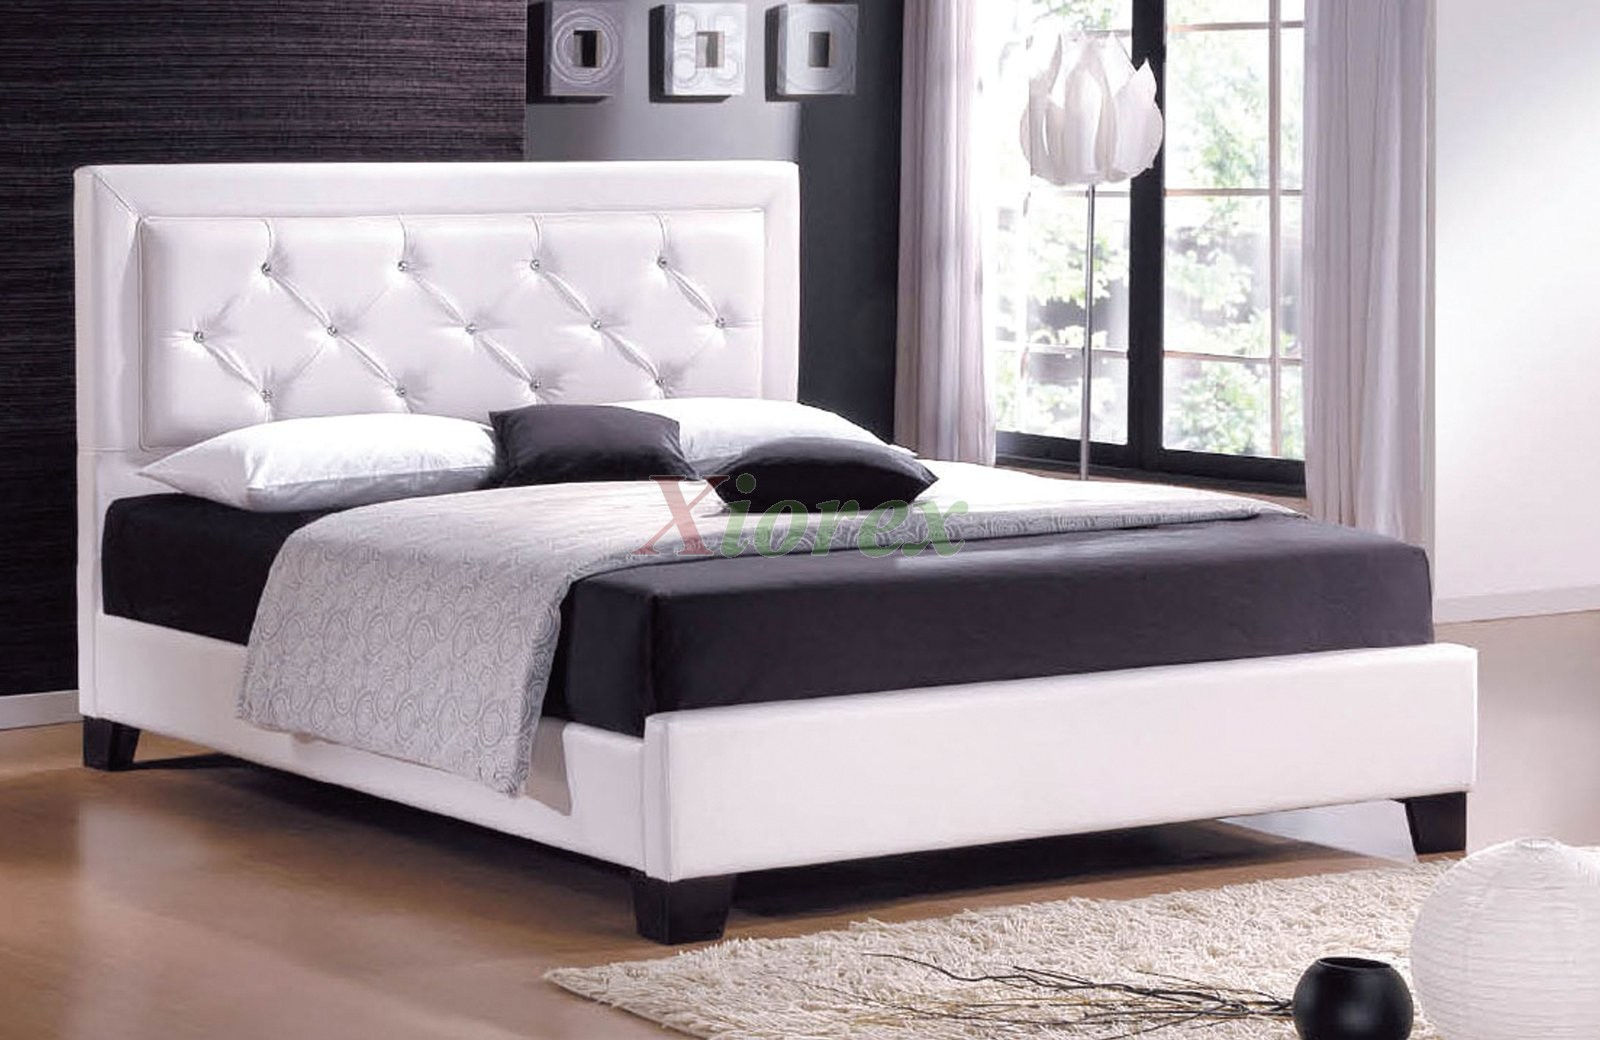 upholstered platform bed furniture with tufted headboard   xiorex -